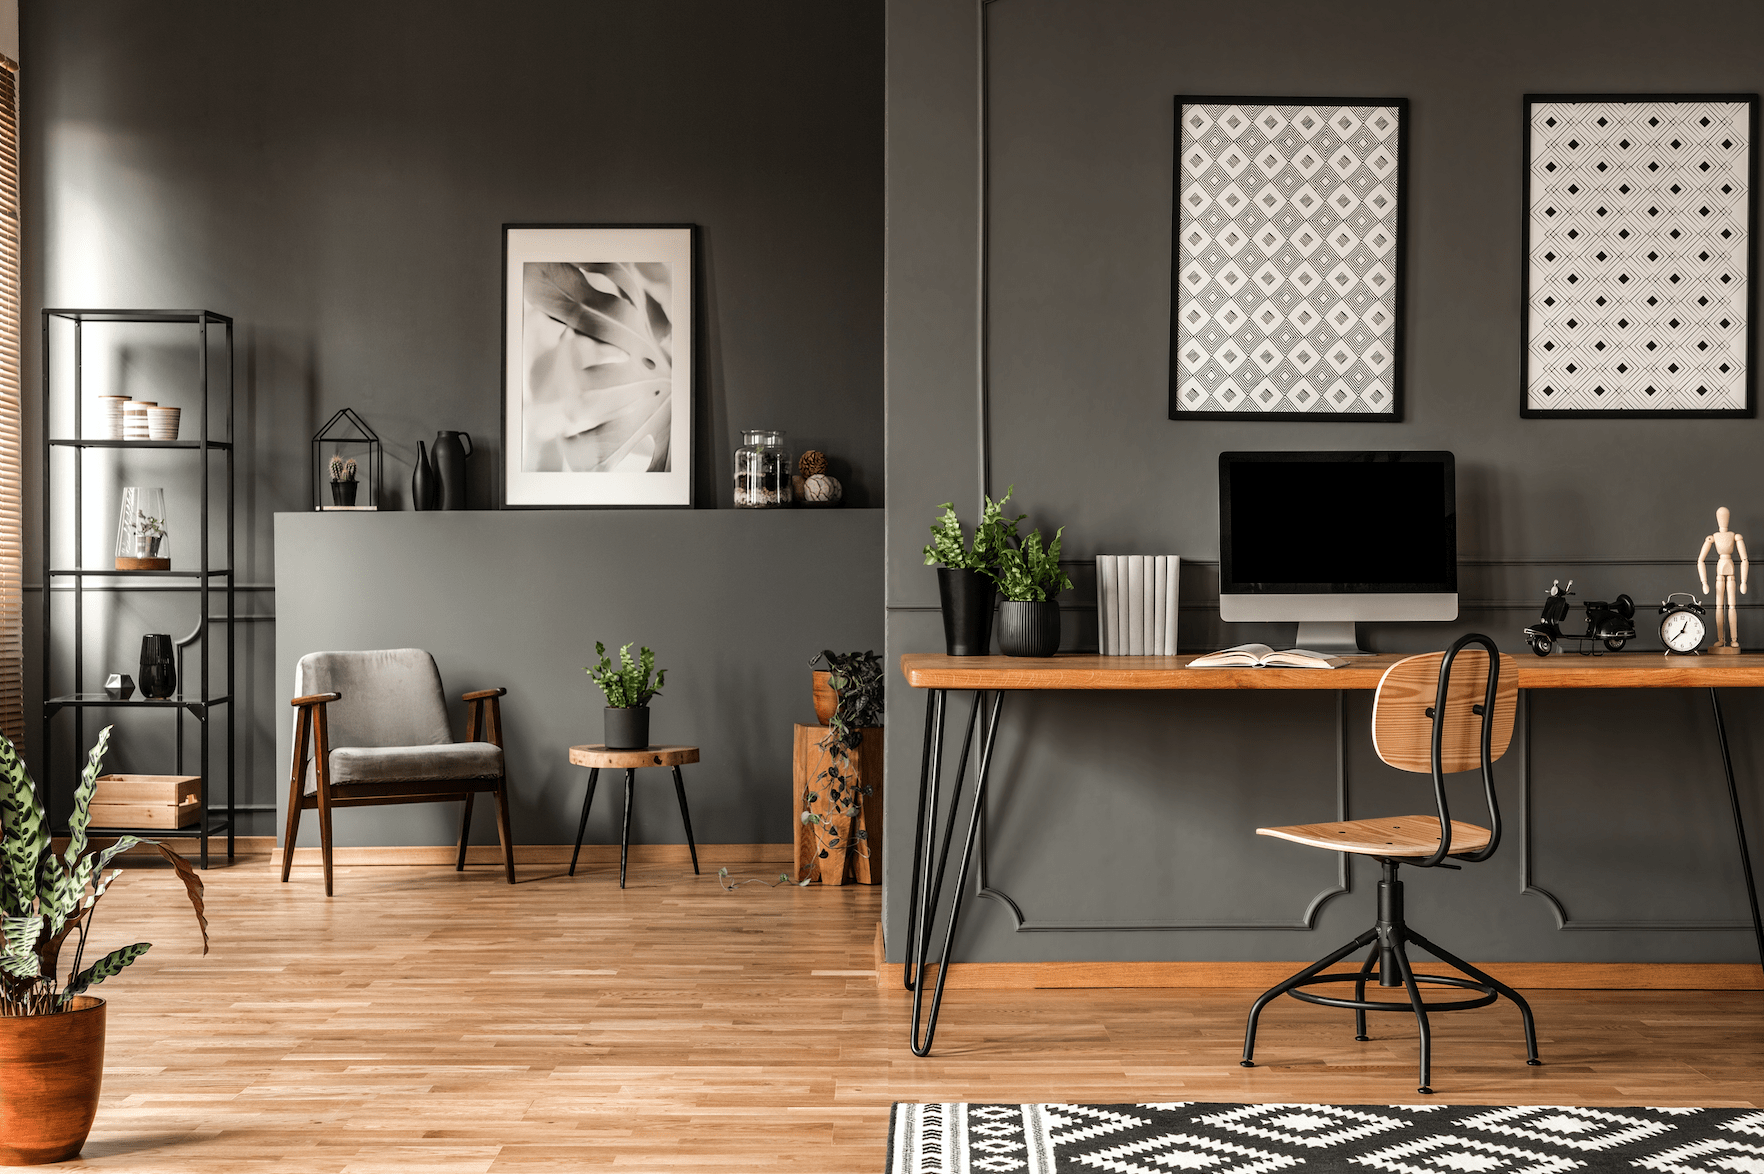 COVID-19: How to adapt to working from home